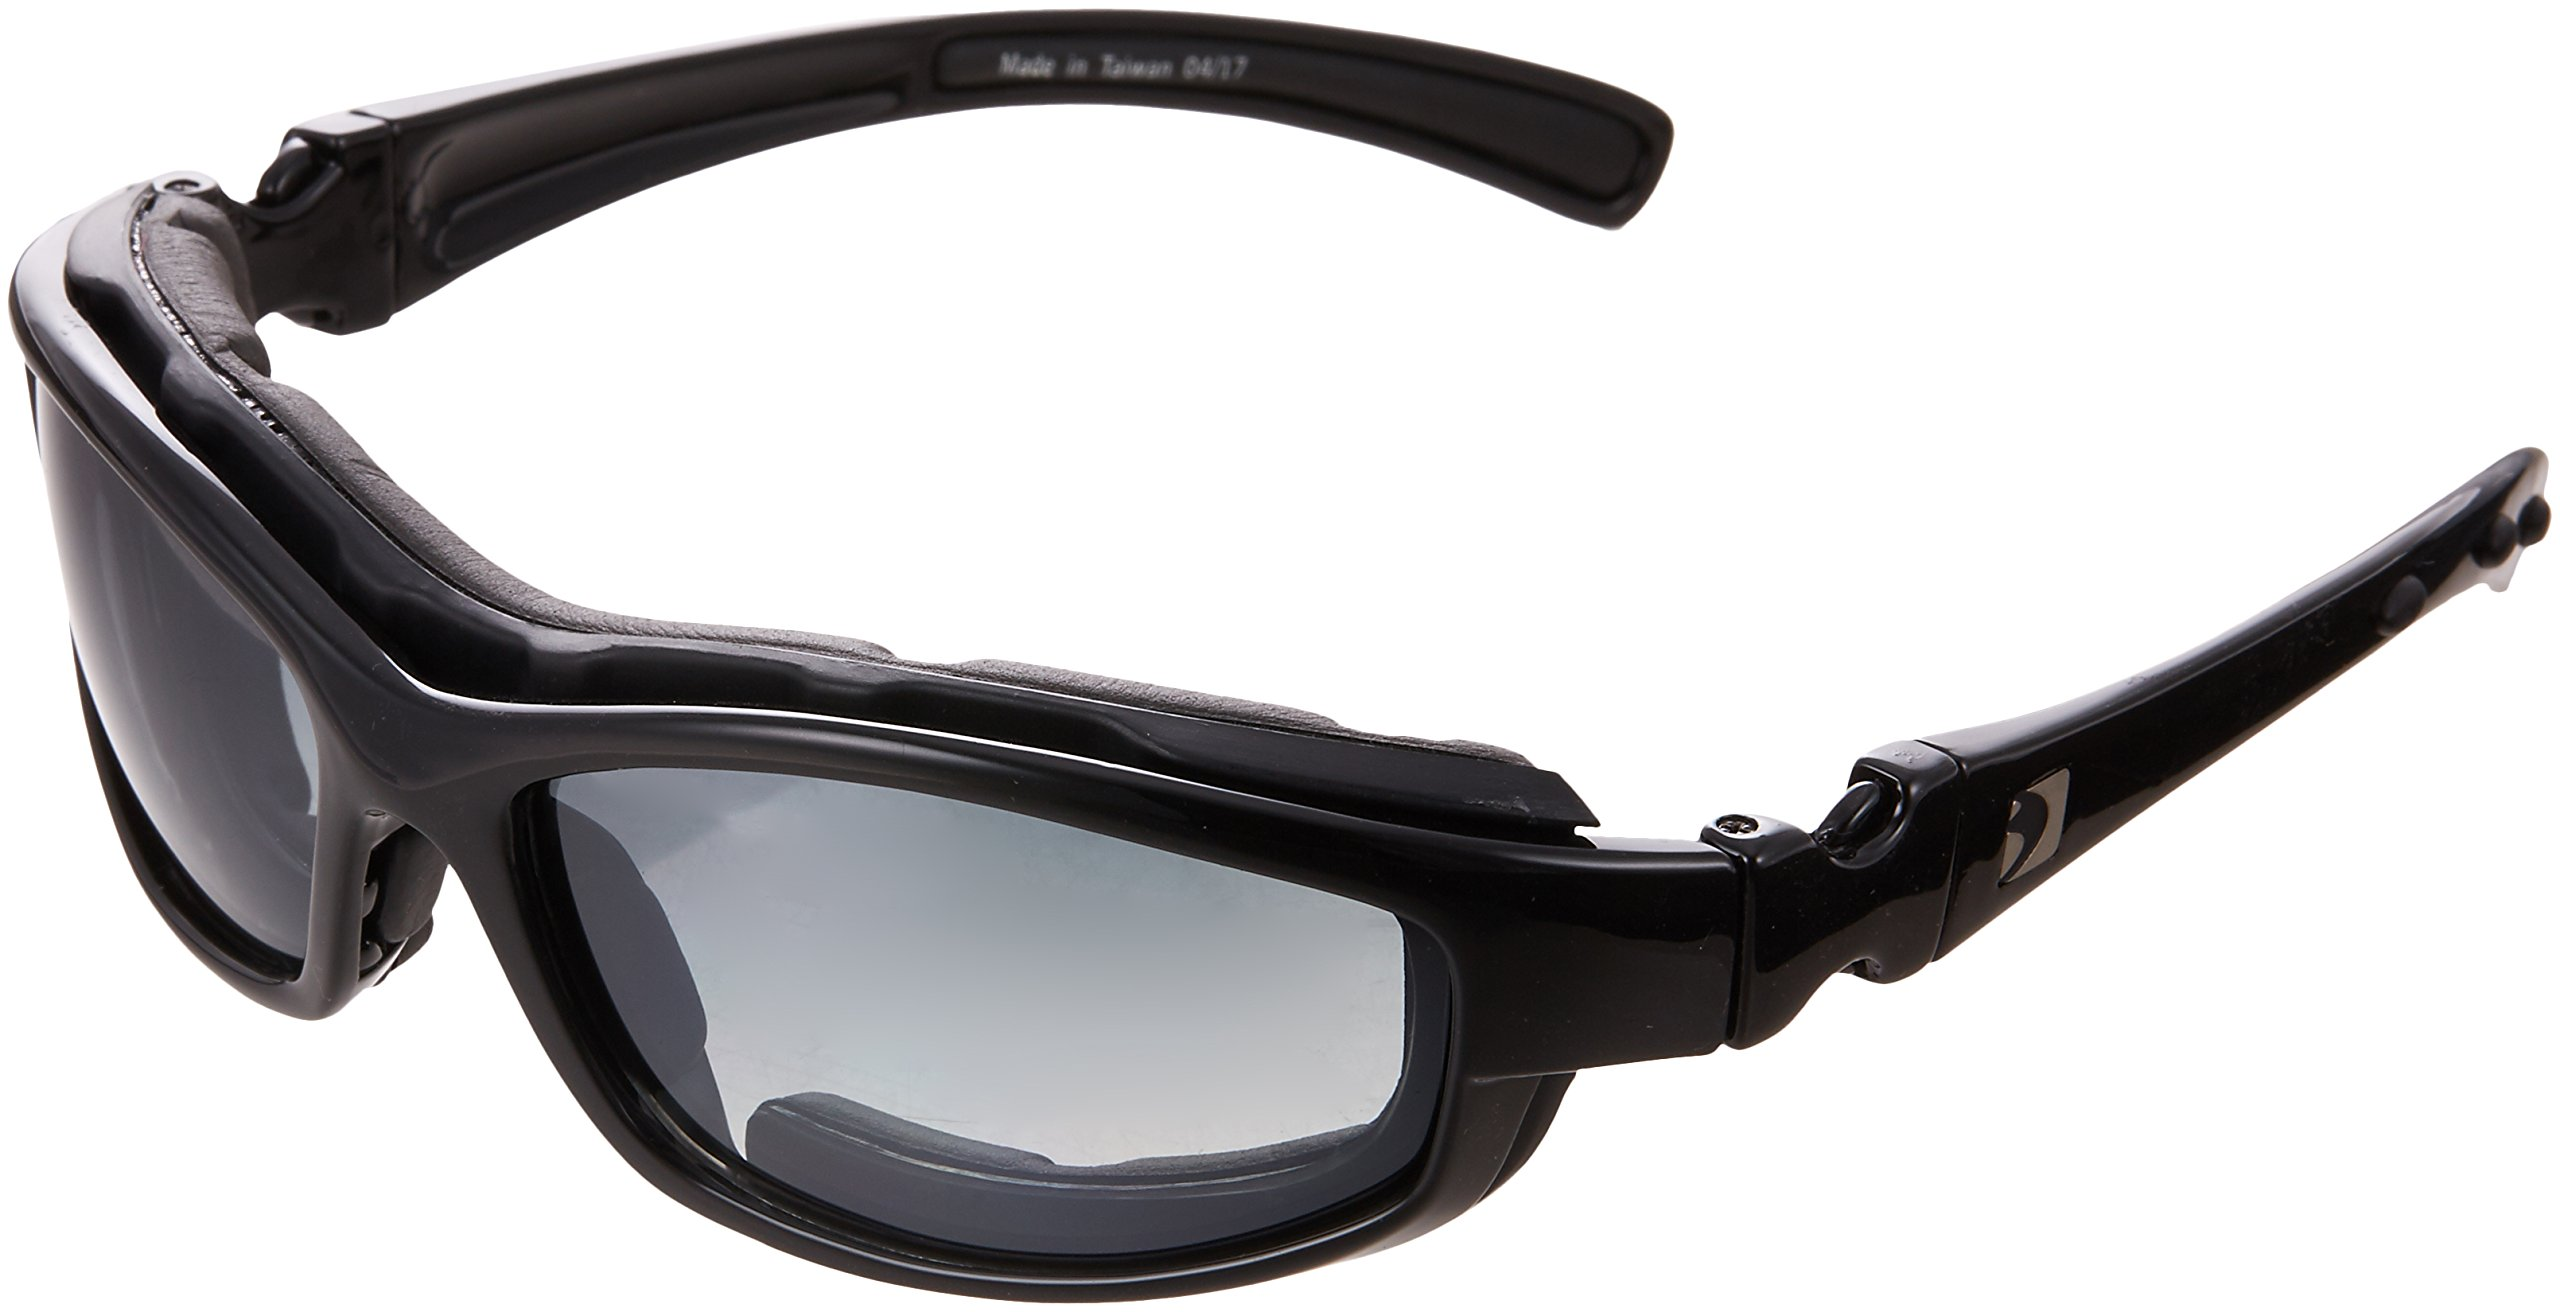 Bobster BRH2001 Road Hog II Prescription Ready Sunglasses,Black Frame/4 Lenses (Dual Grade Reflective/Smoked/Amber and Clear),one size by Bobster